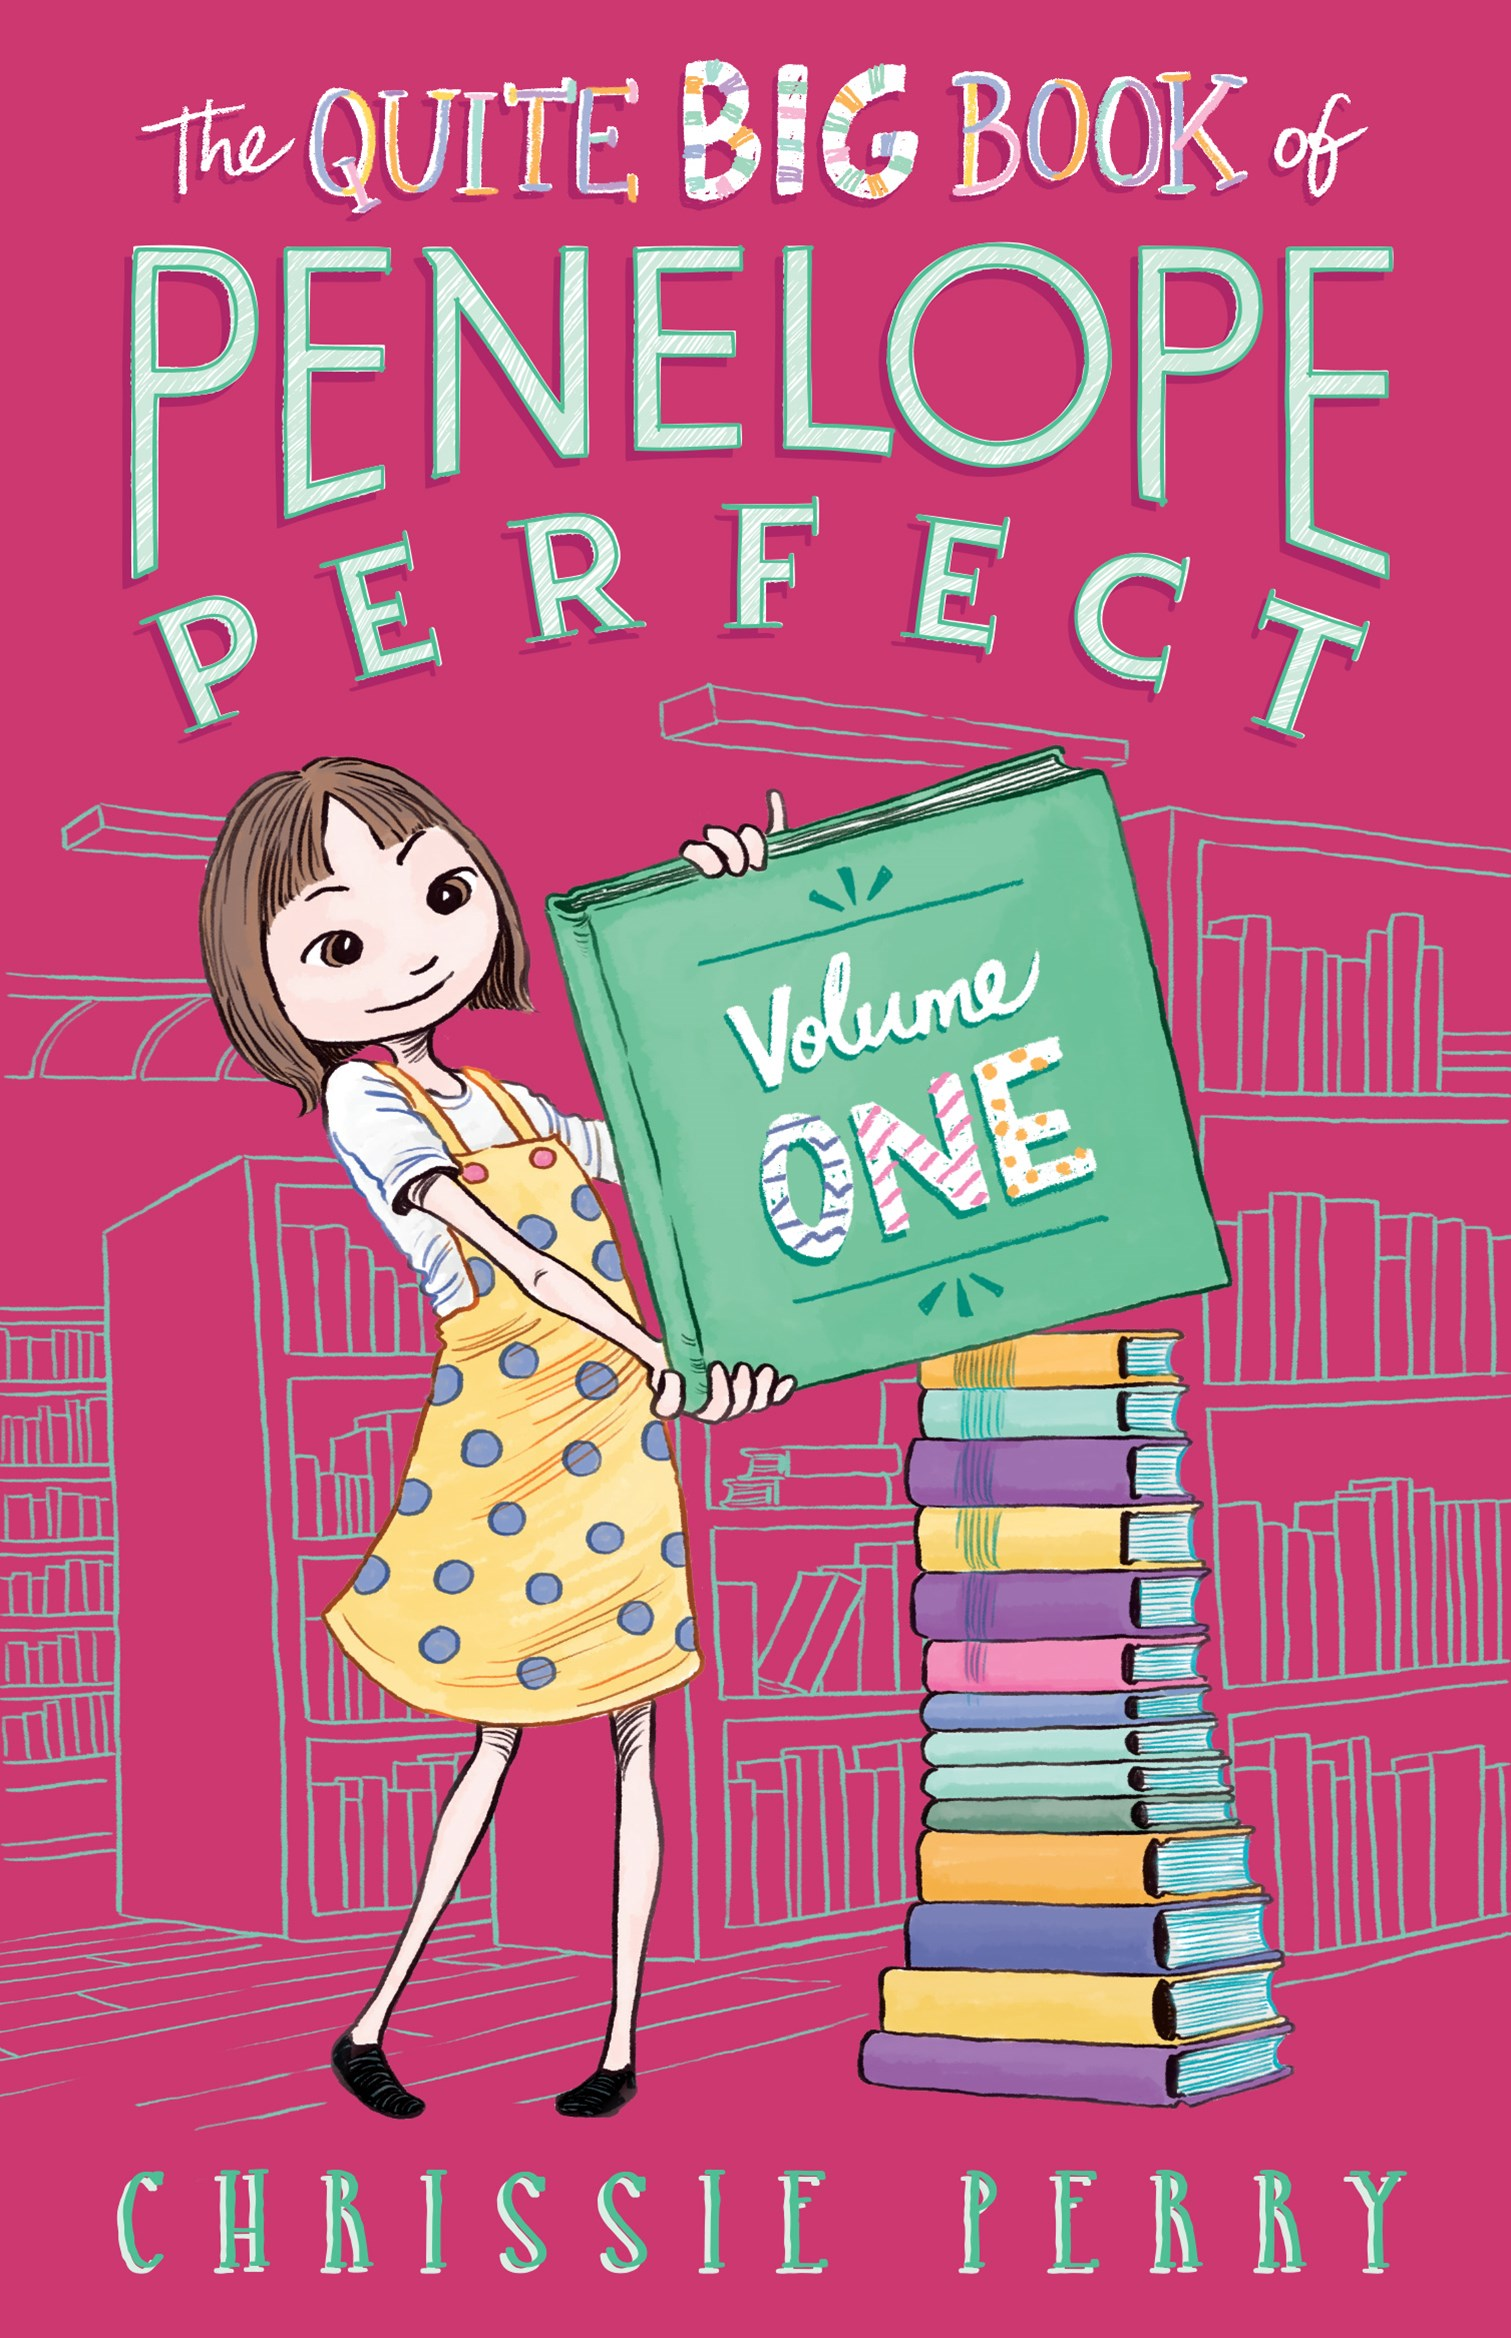 QUITE BIG BOOK OF PENELOPE PERFECT